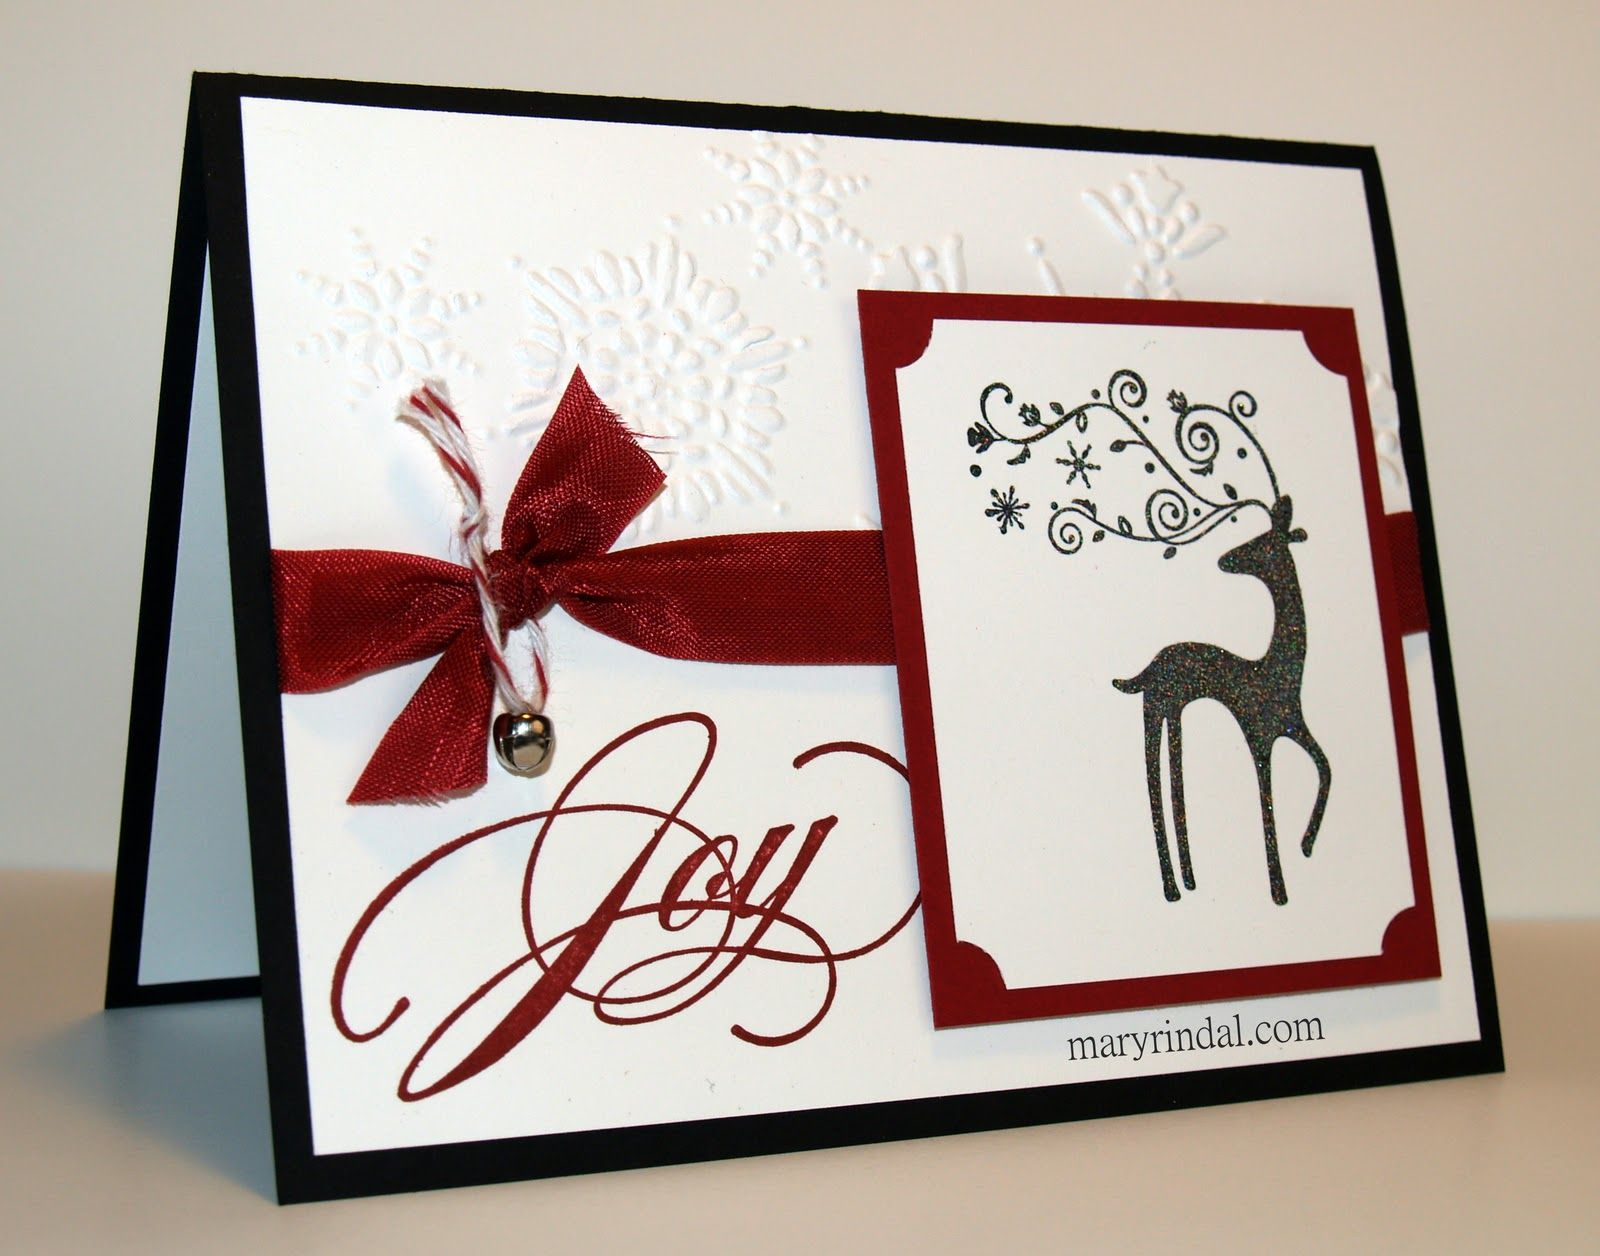 Christmas Card Making Ideas 2014 Part - 23: Stampin+up+dasher+card+ideas+2014 | Your Christmas Cards Coming